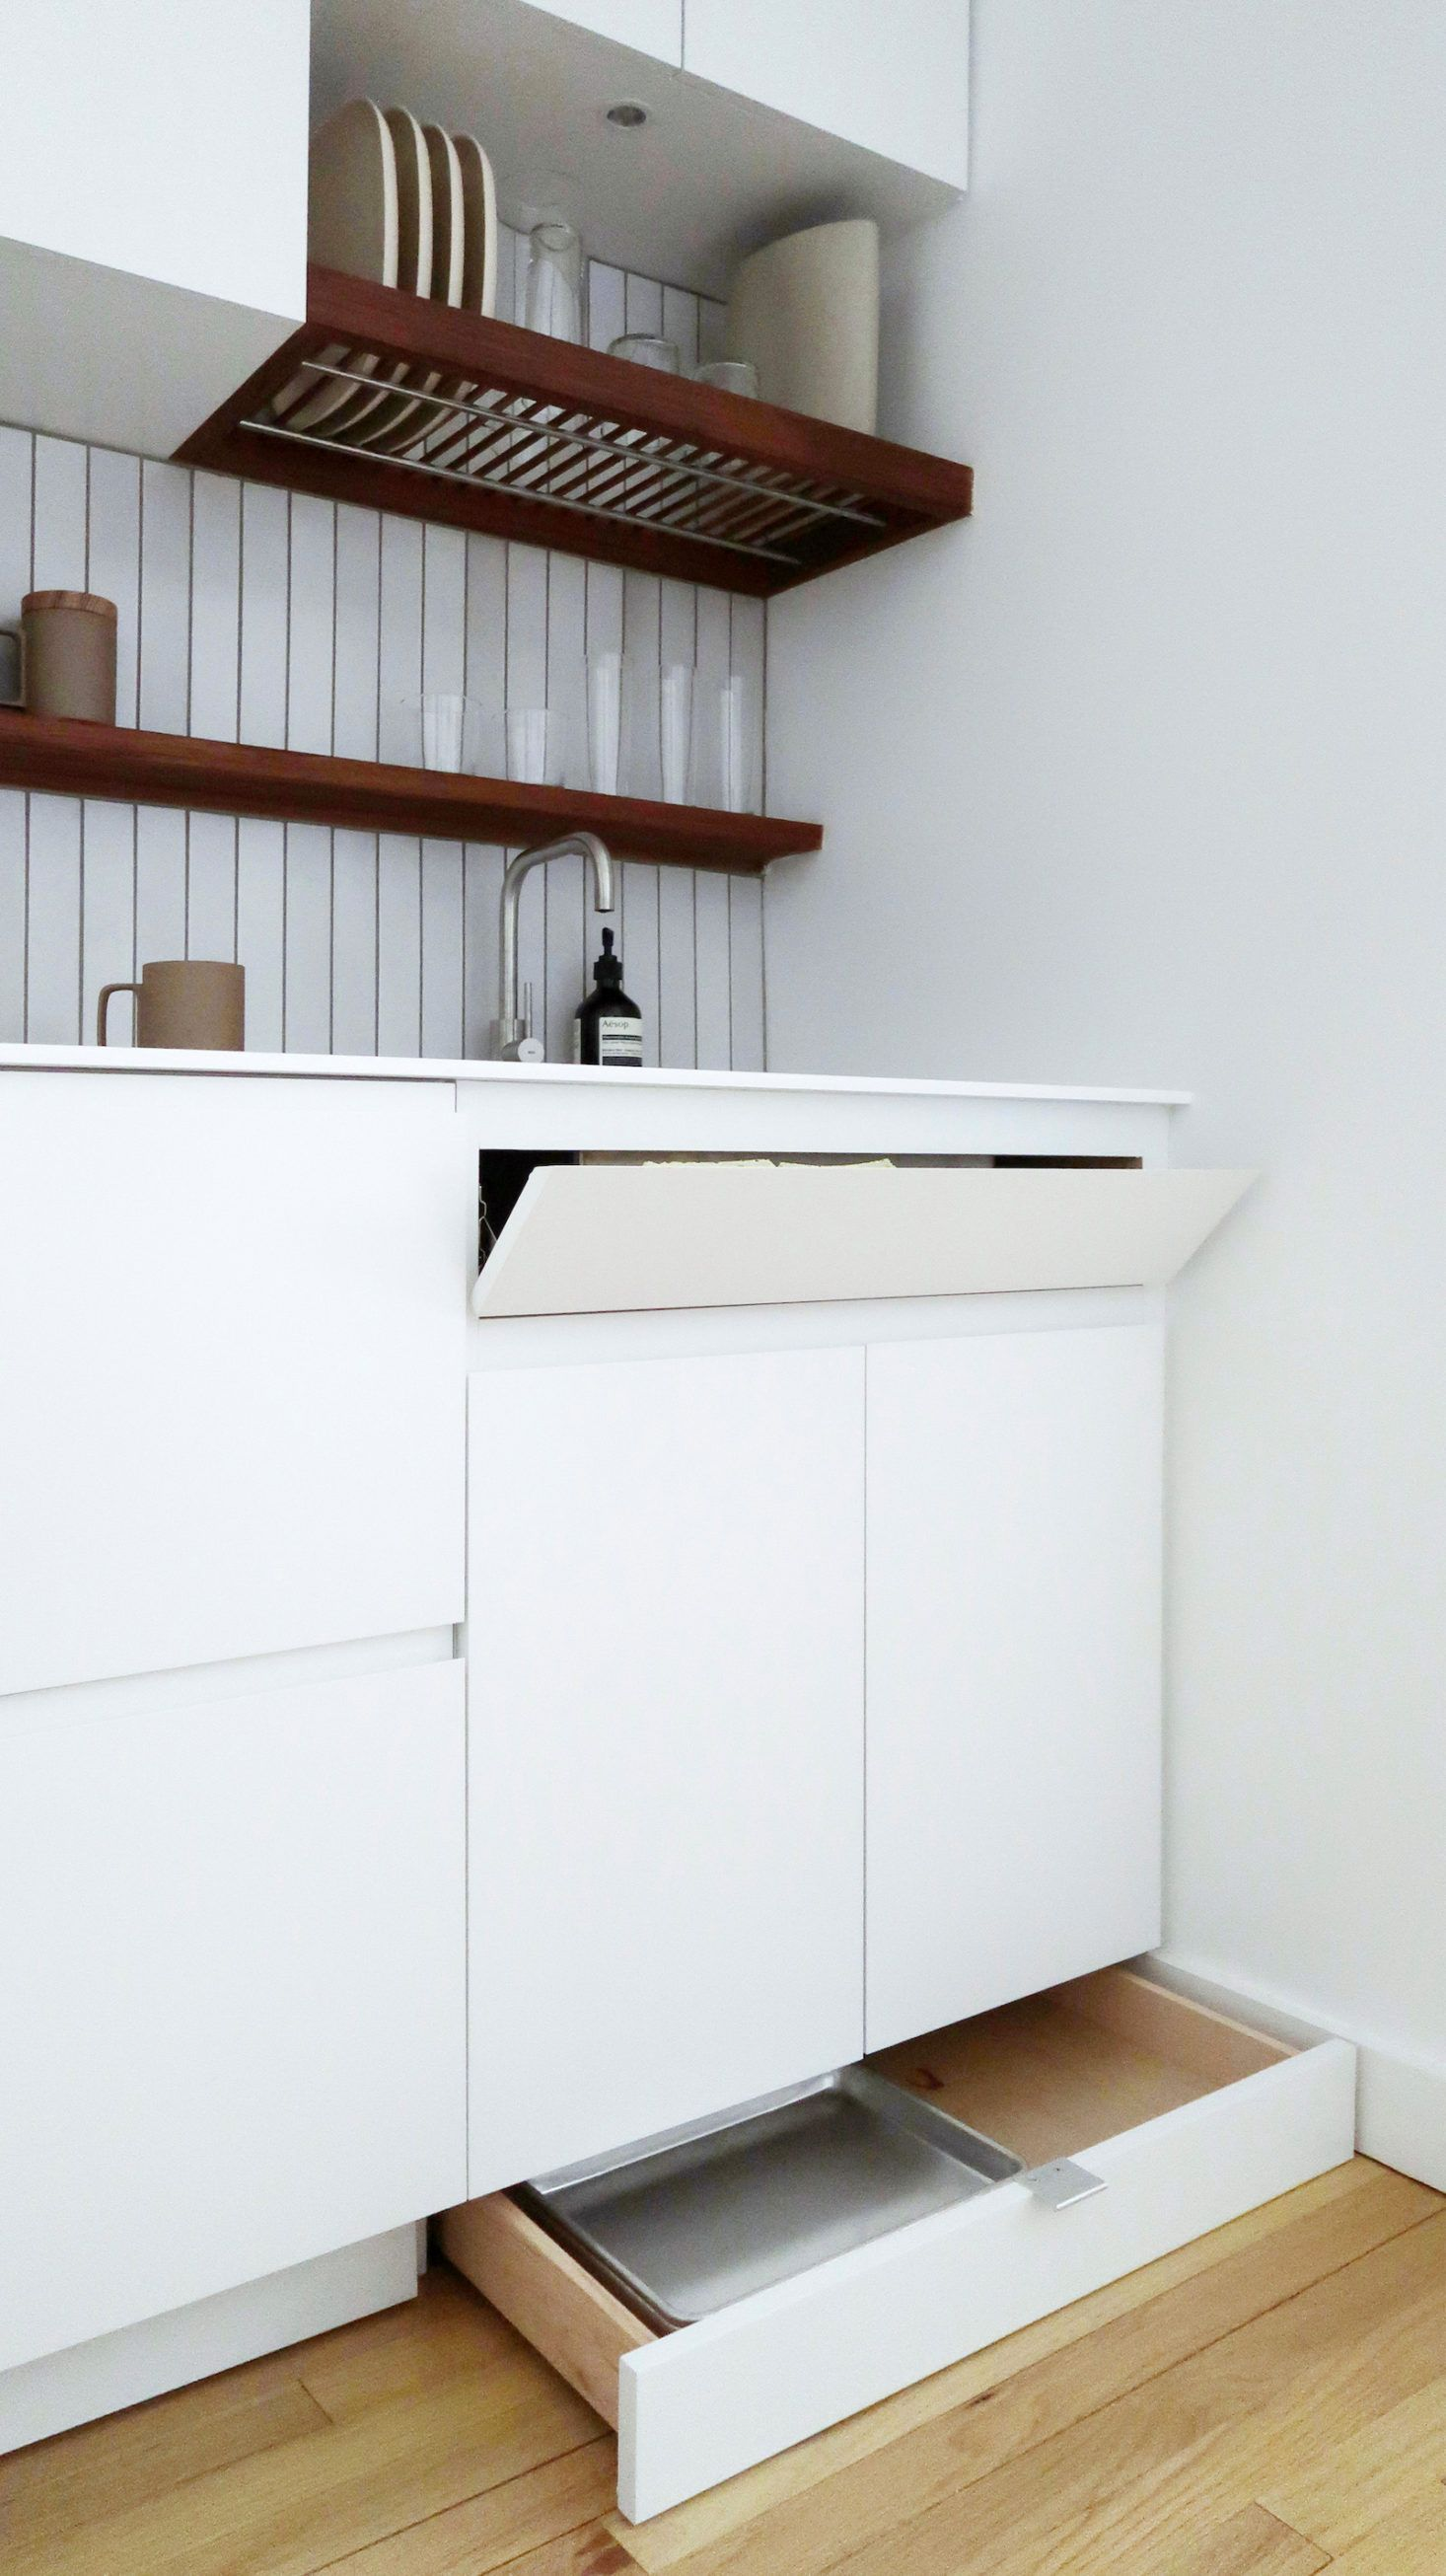 A Tiny Kitchen Made For Cooking Everything You Need In 26 Square Feet The Organized Home Installing Kitchen Cabinets Tiny Kitchen Kitchen Plans